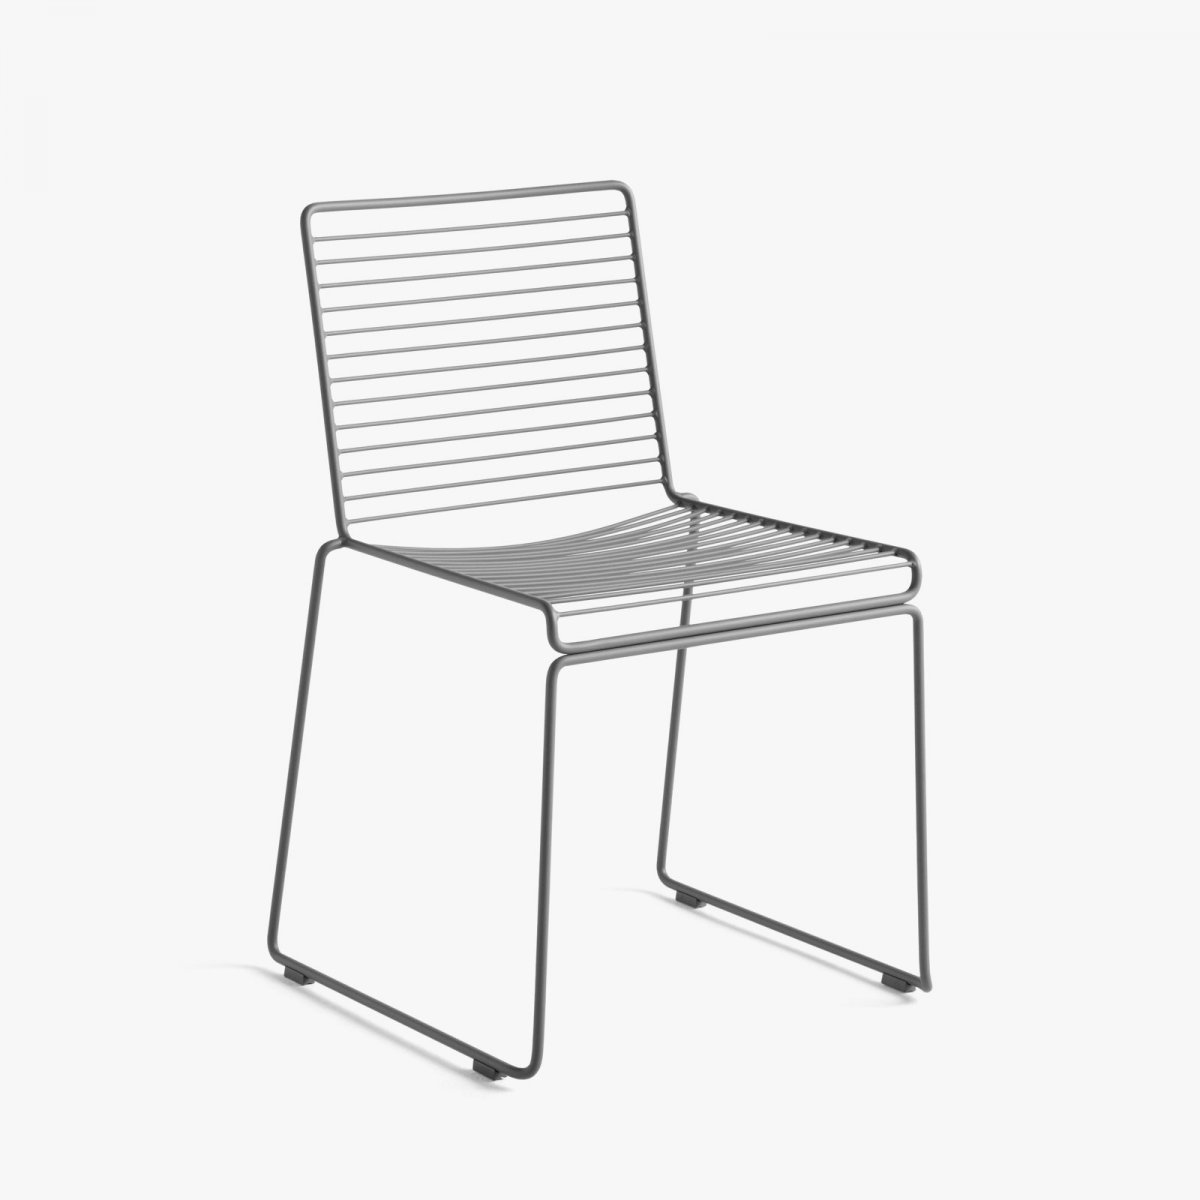 Hee Dining Chair, asphalt gray.